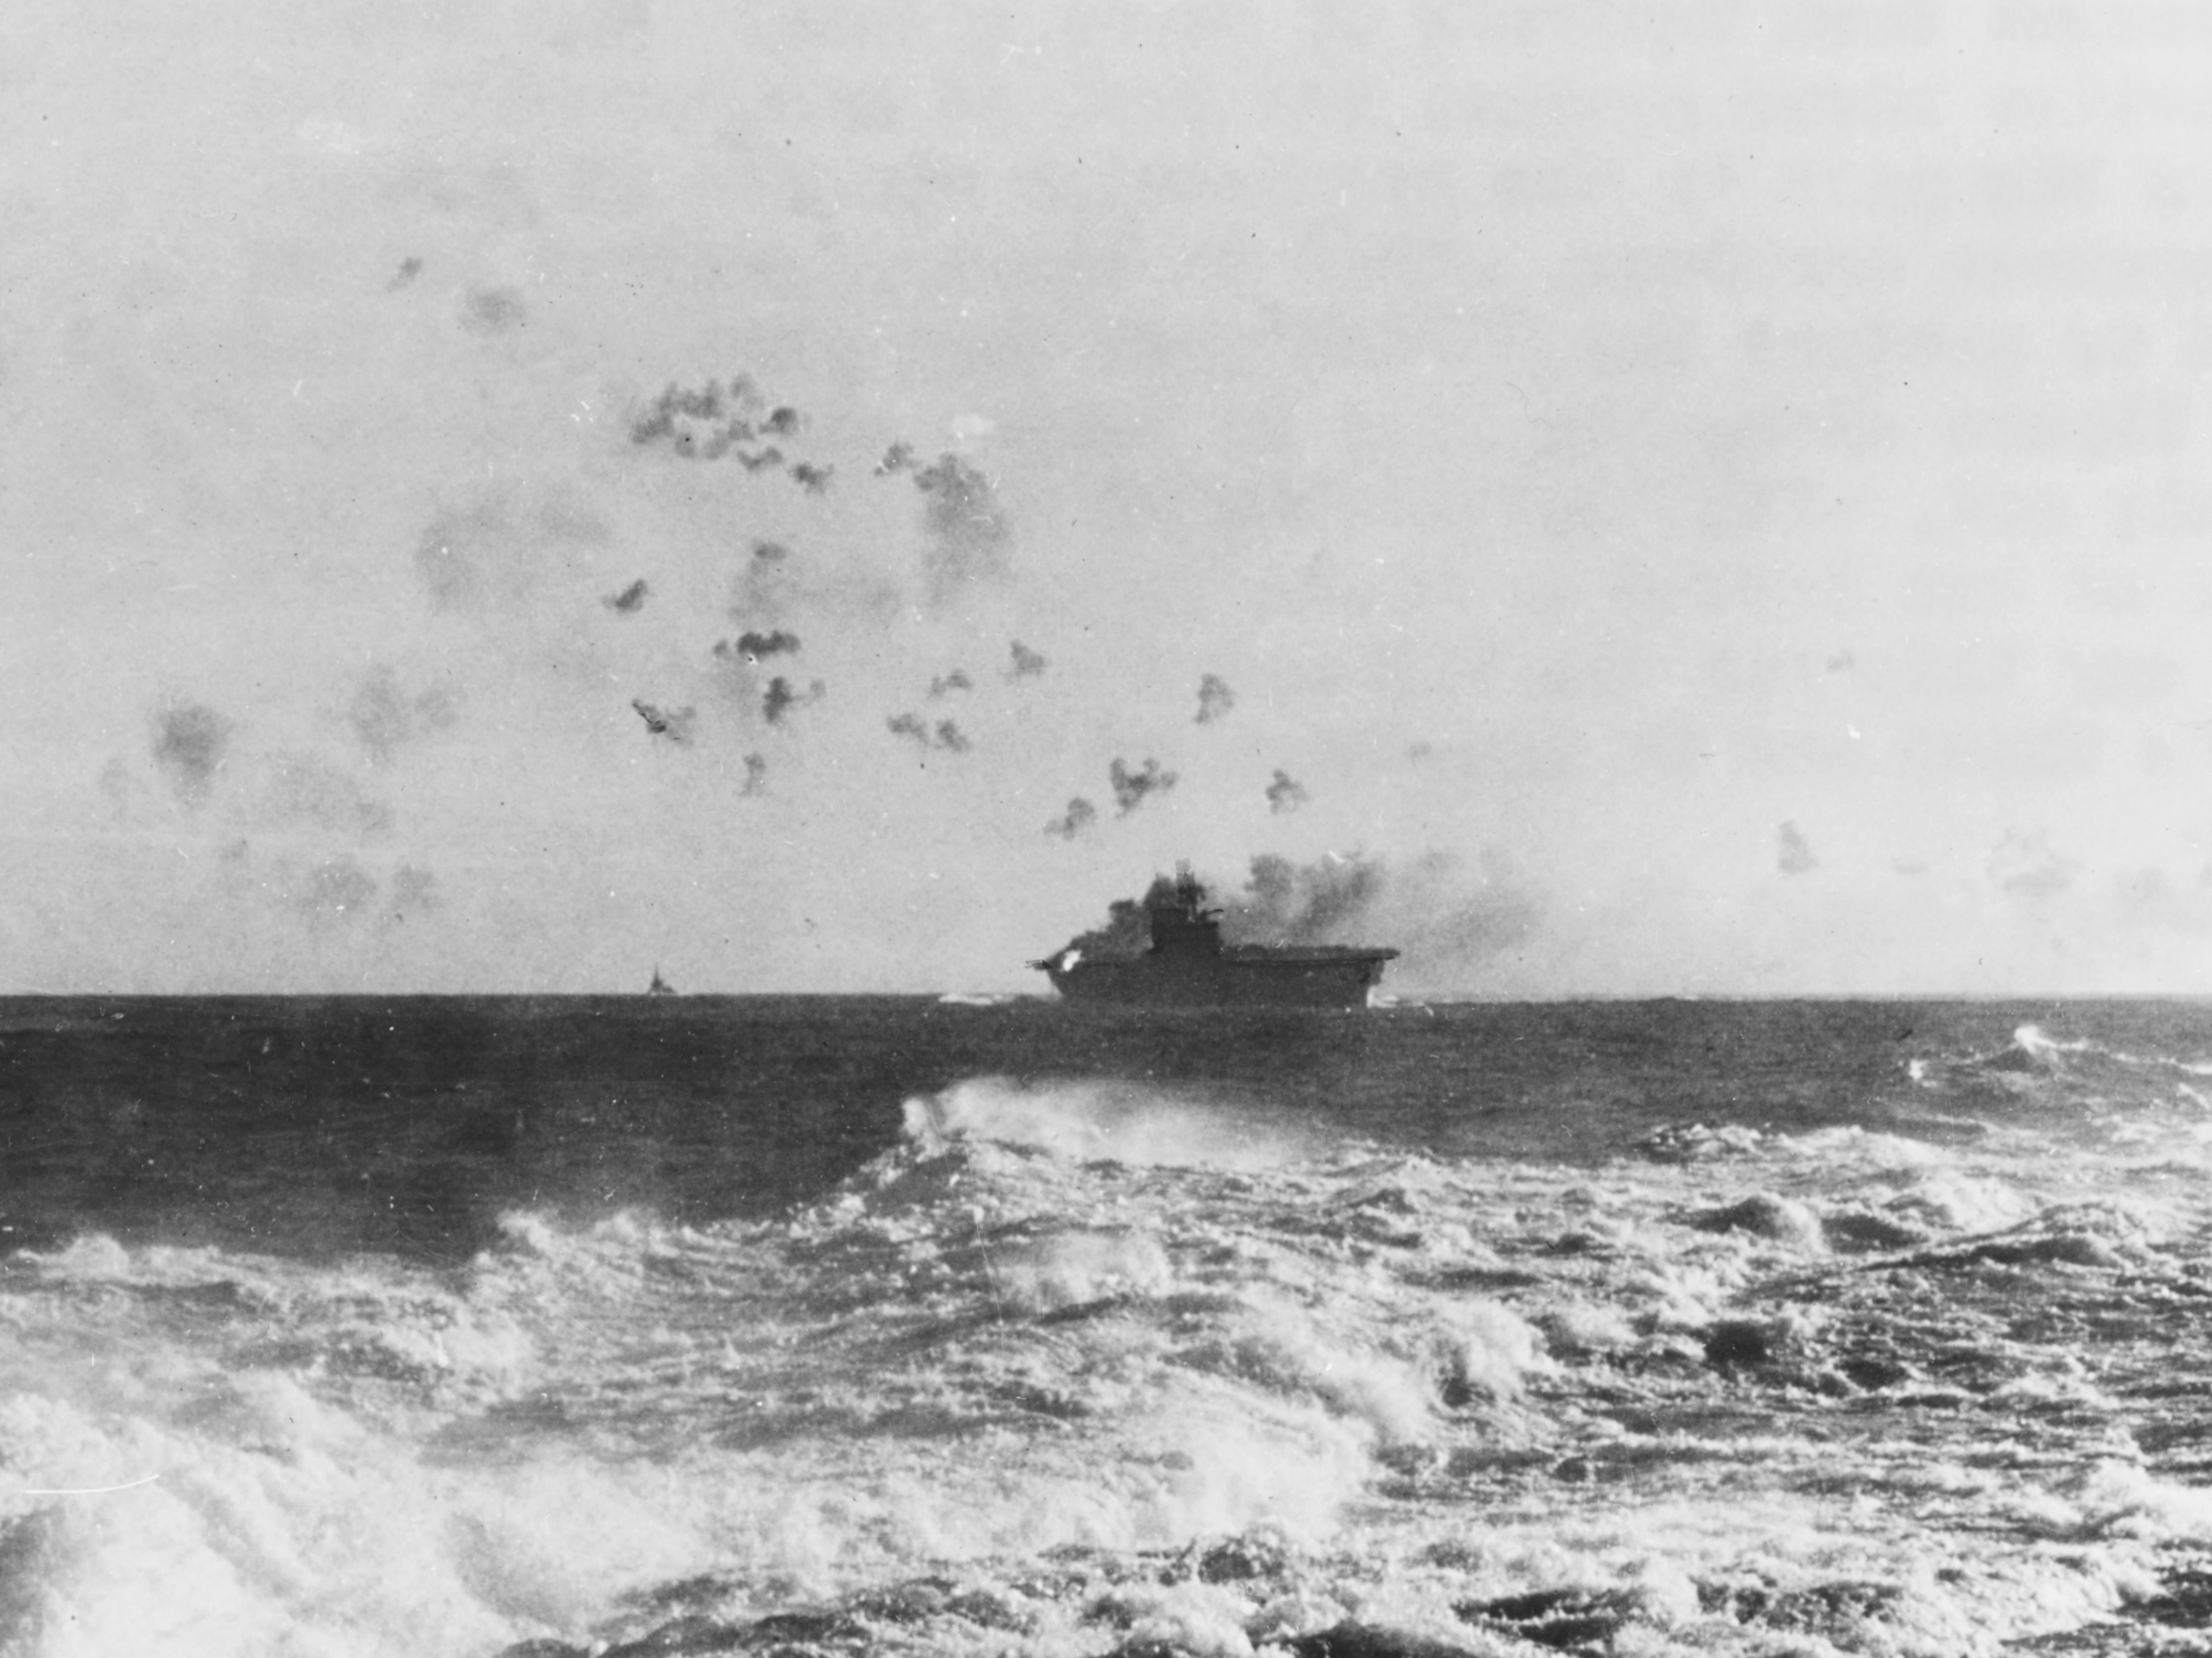 The U.S. Navy aircraft carrier USS Enterprise (CV-6) seen from another U.S. ship while under attack by Japanese dive bombers during the Battle of the Eastern Solomons on August 24, 1942. An intense fire is burning in her starboard after five-inch gun gallery, the result of a bomb hit that ignited ready-service ammunition. Note the anti-aircraft shell bursts over the carrier.